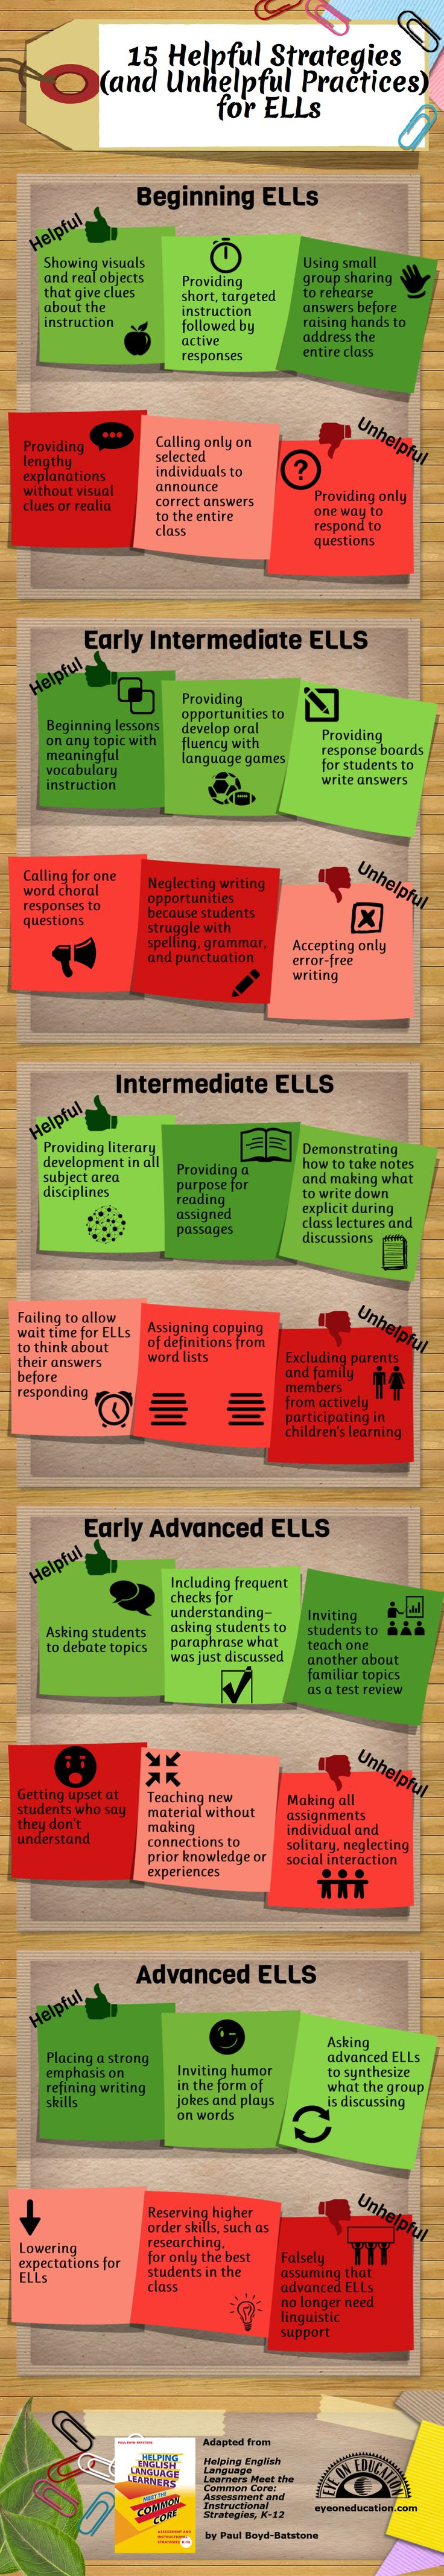 https://www.eyeoneducation.com/Portals/0/Images/Infographic/BoydBatstone_ELLs_Large.png